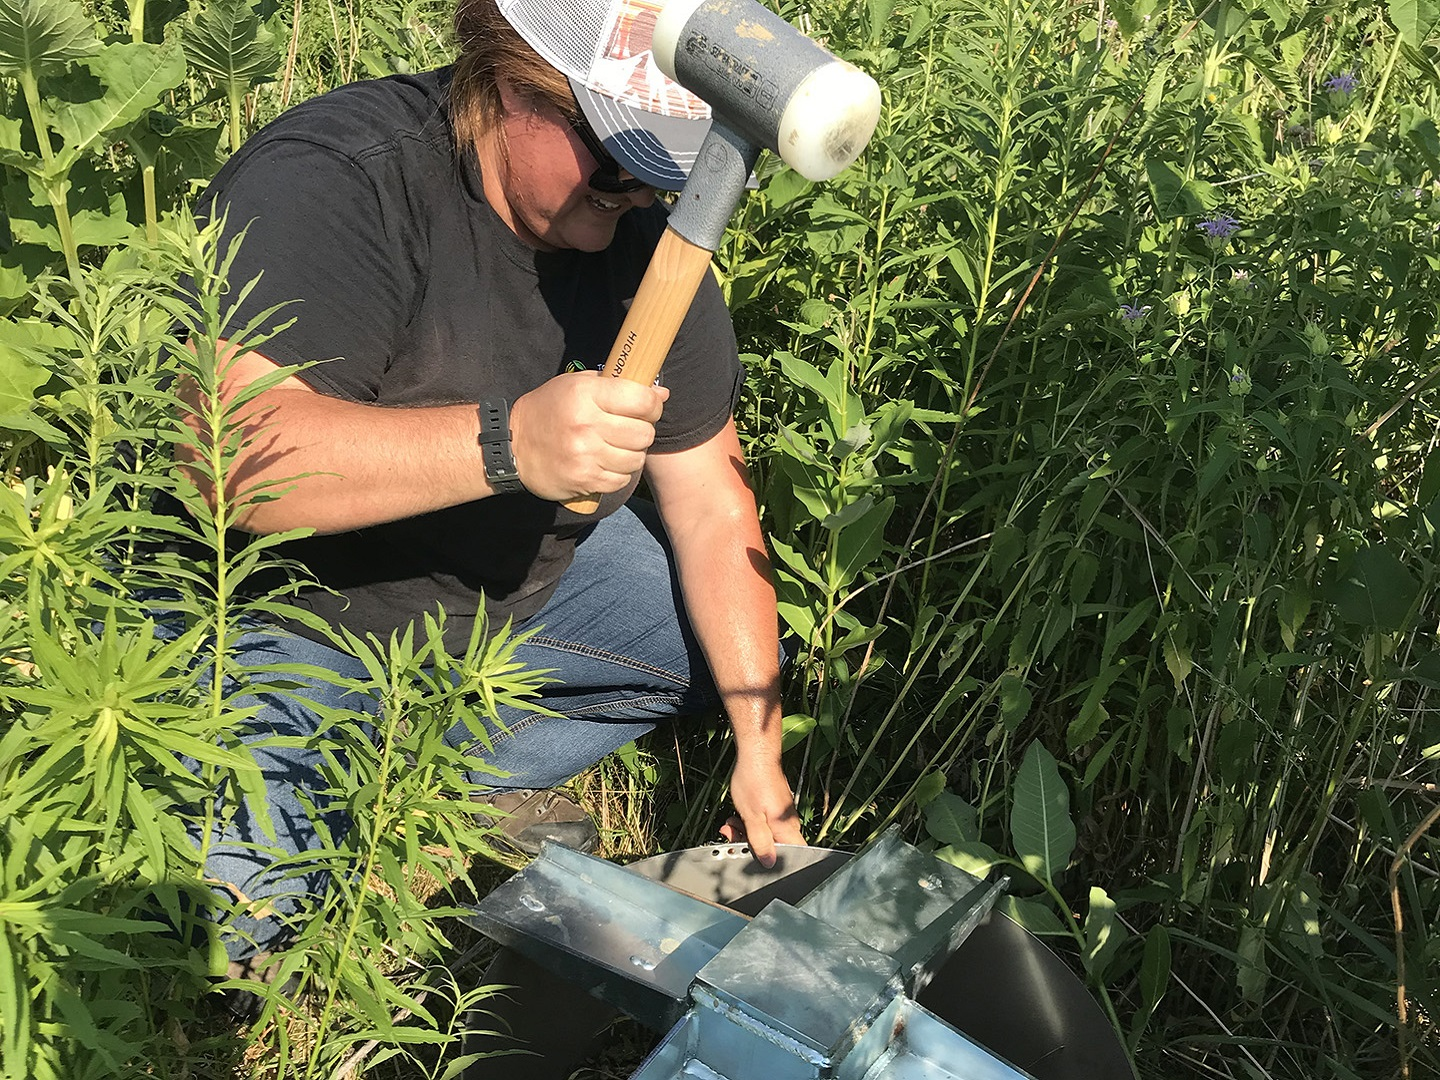 TRCA restoration team member helps to conduct infilatration rate research in The Meadoway